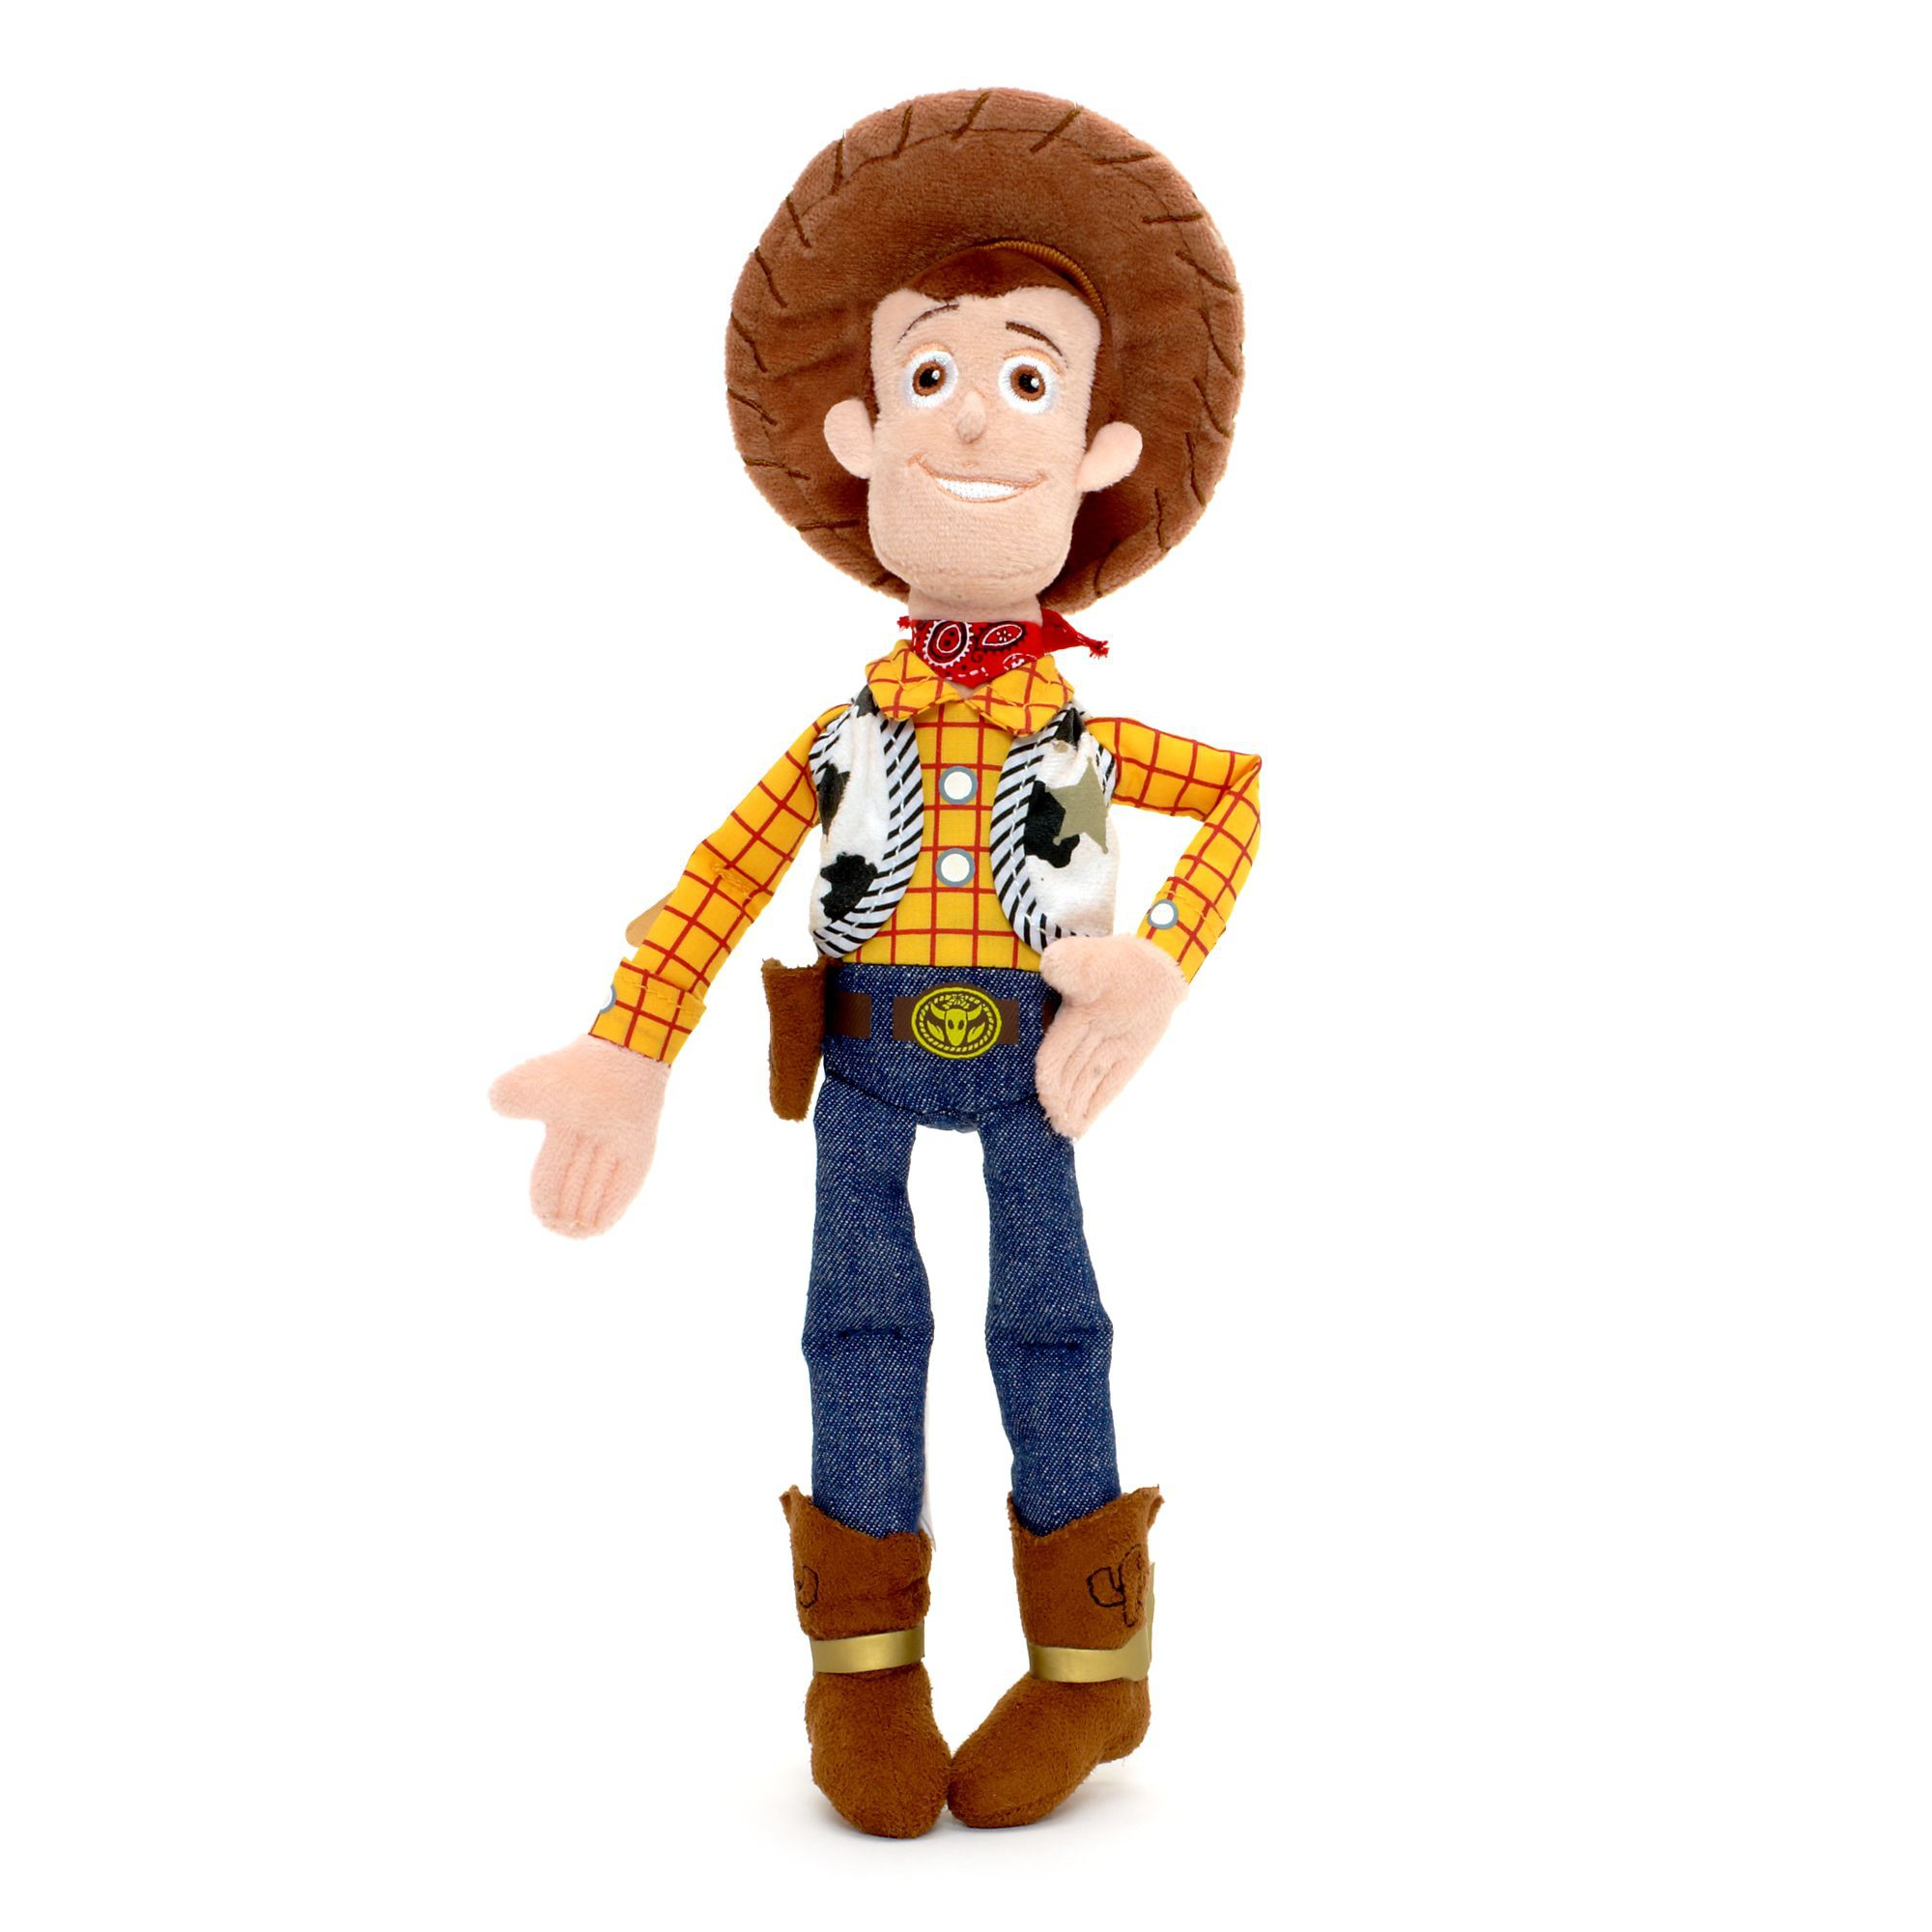 Disney Woody knuffel